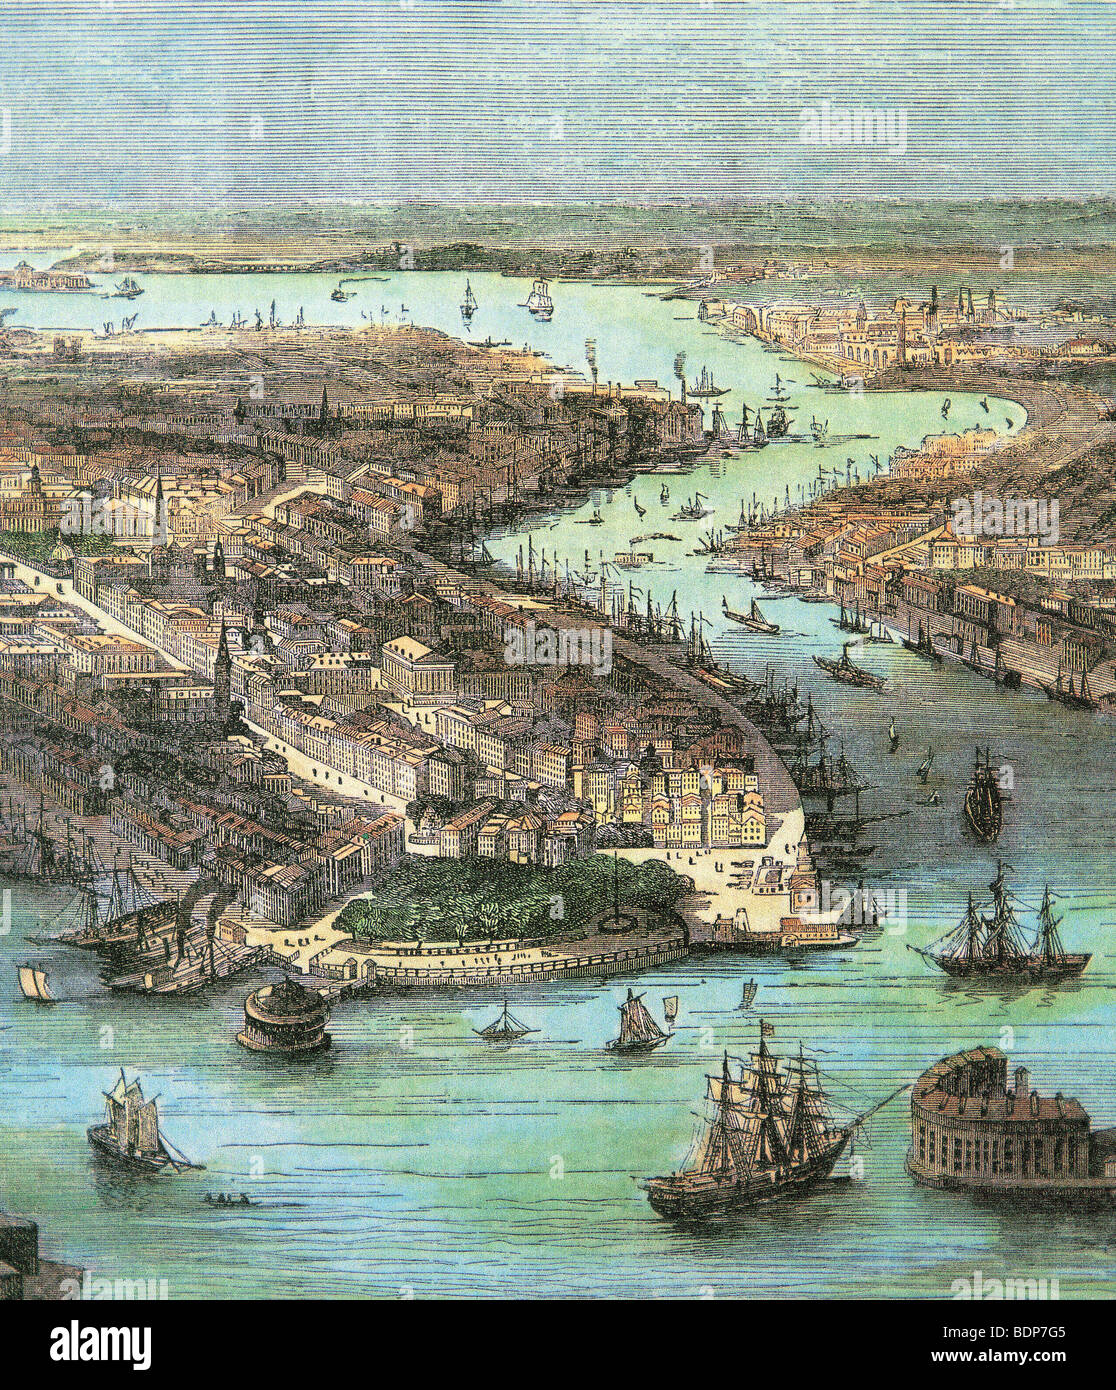 NEW YORK  - coloured earl;y 18th century engraving - Stock Image